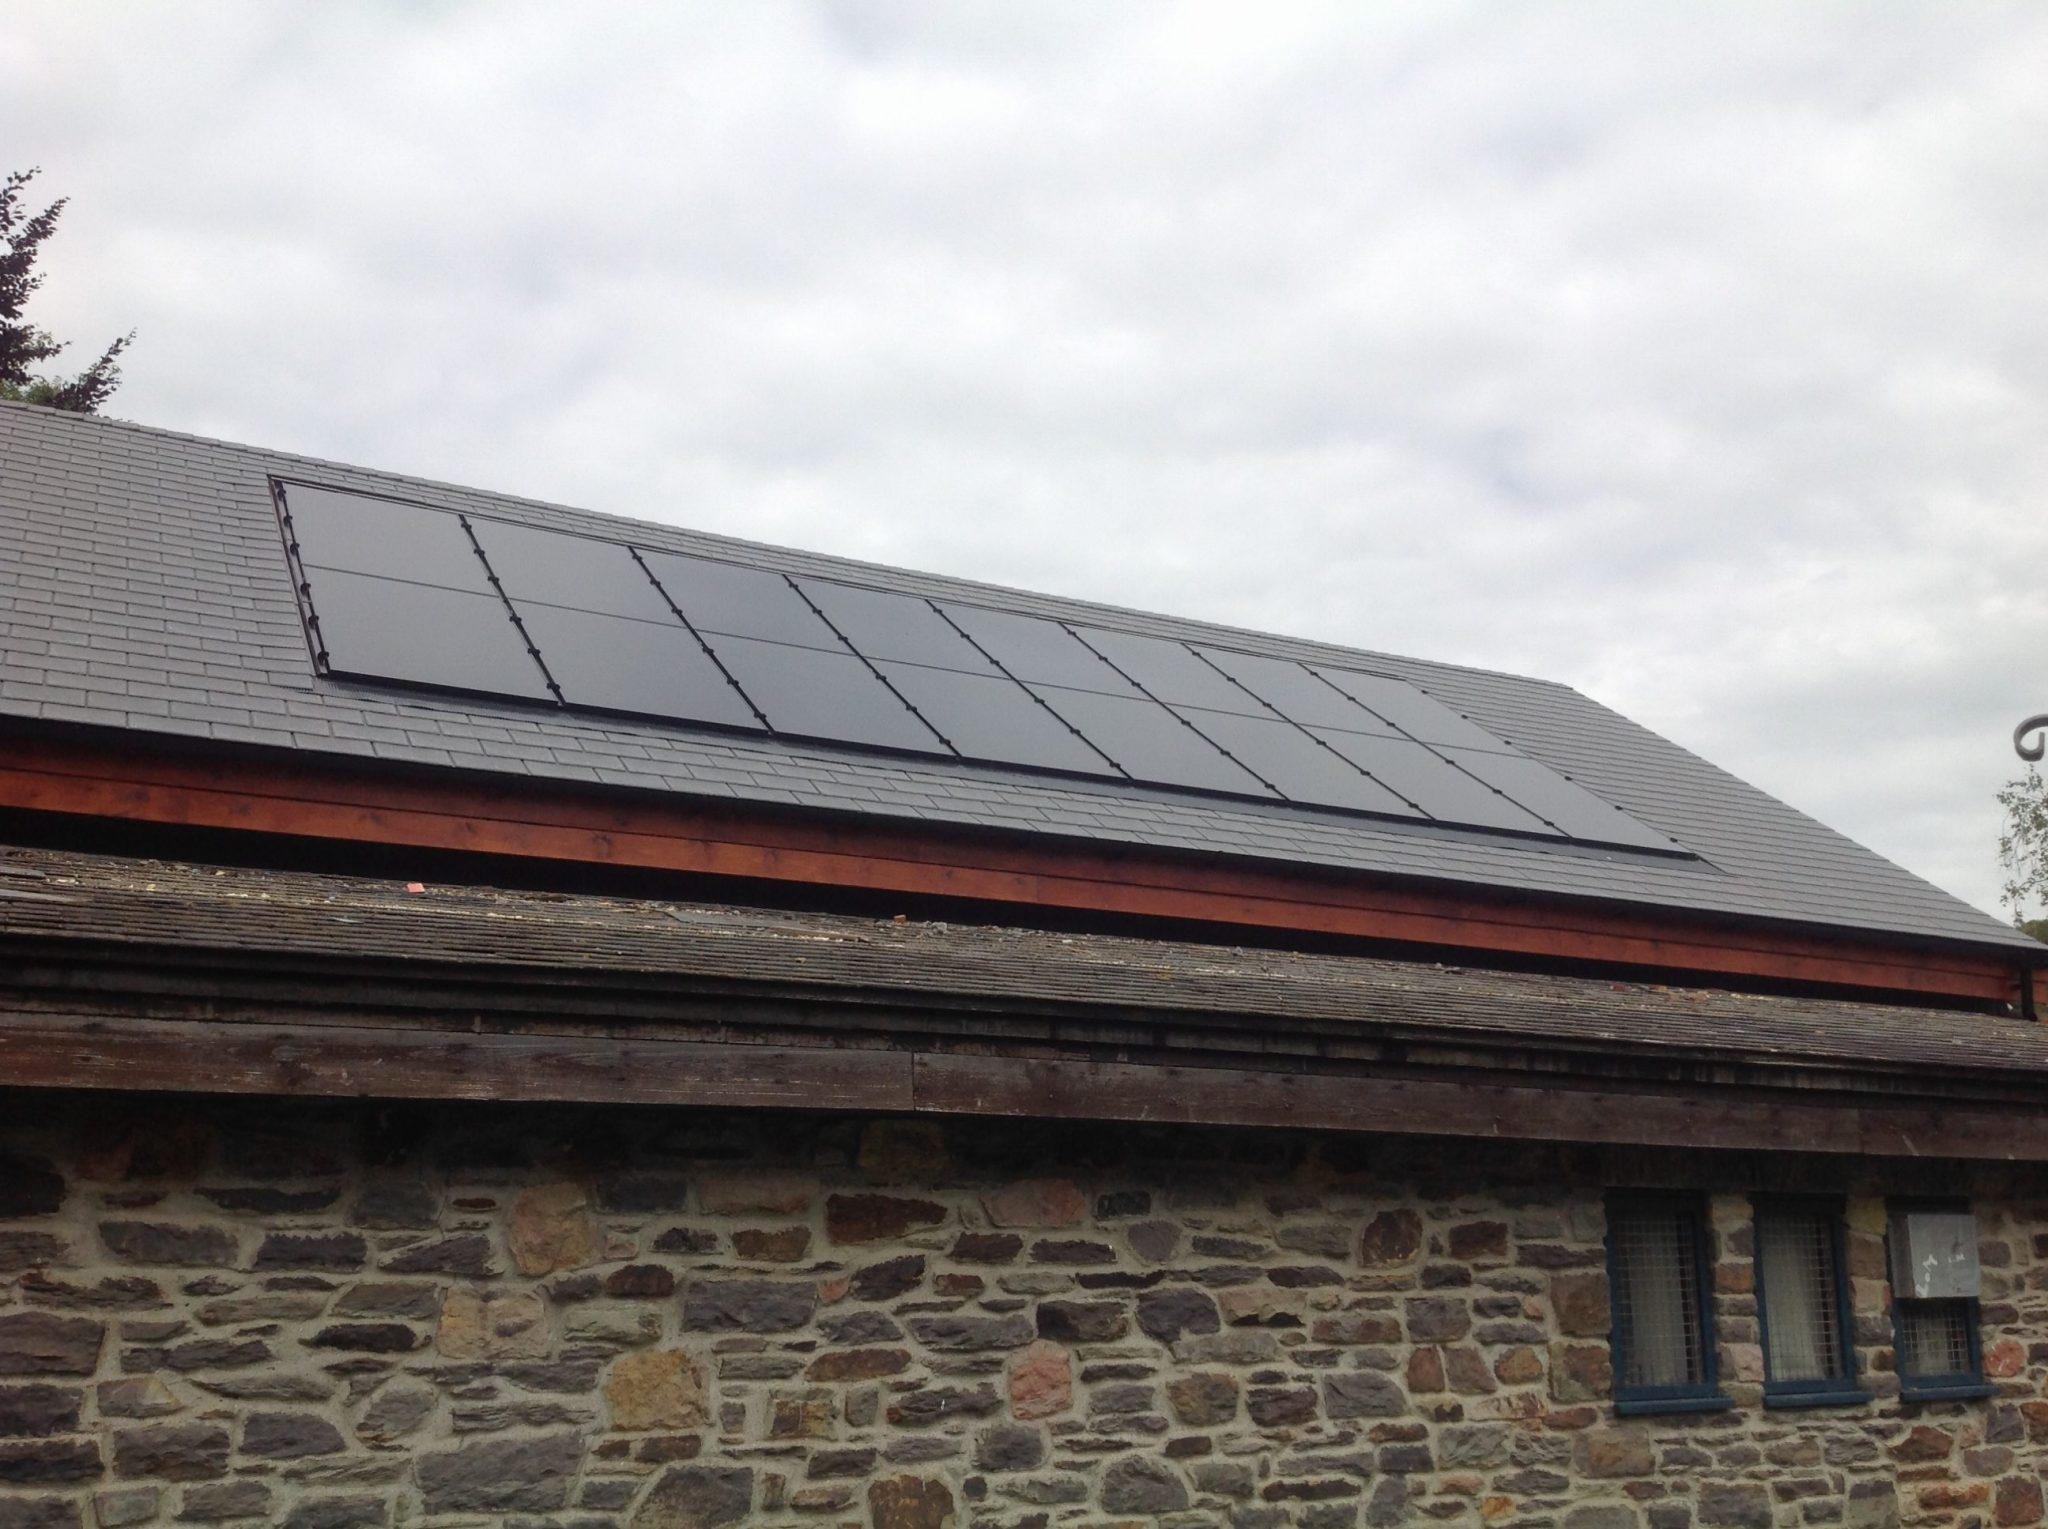 The Inbuilt PV Roof System Was Fitted By Local Firm RES Devon, Local Roofing  Firm Nathan Spice Undertook The Roofing Work And The LED Lighting Was  Provided ...